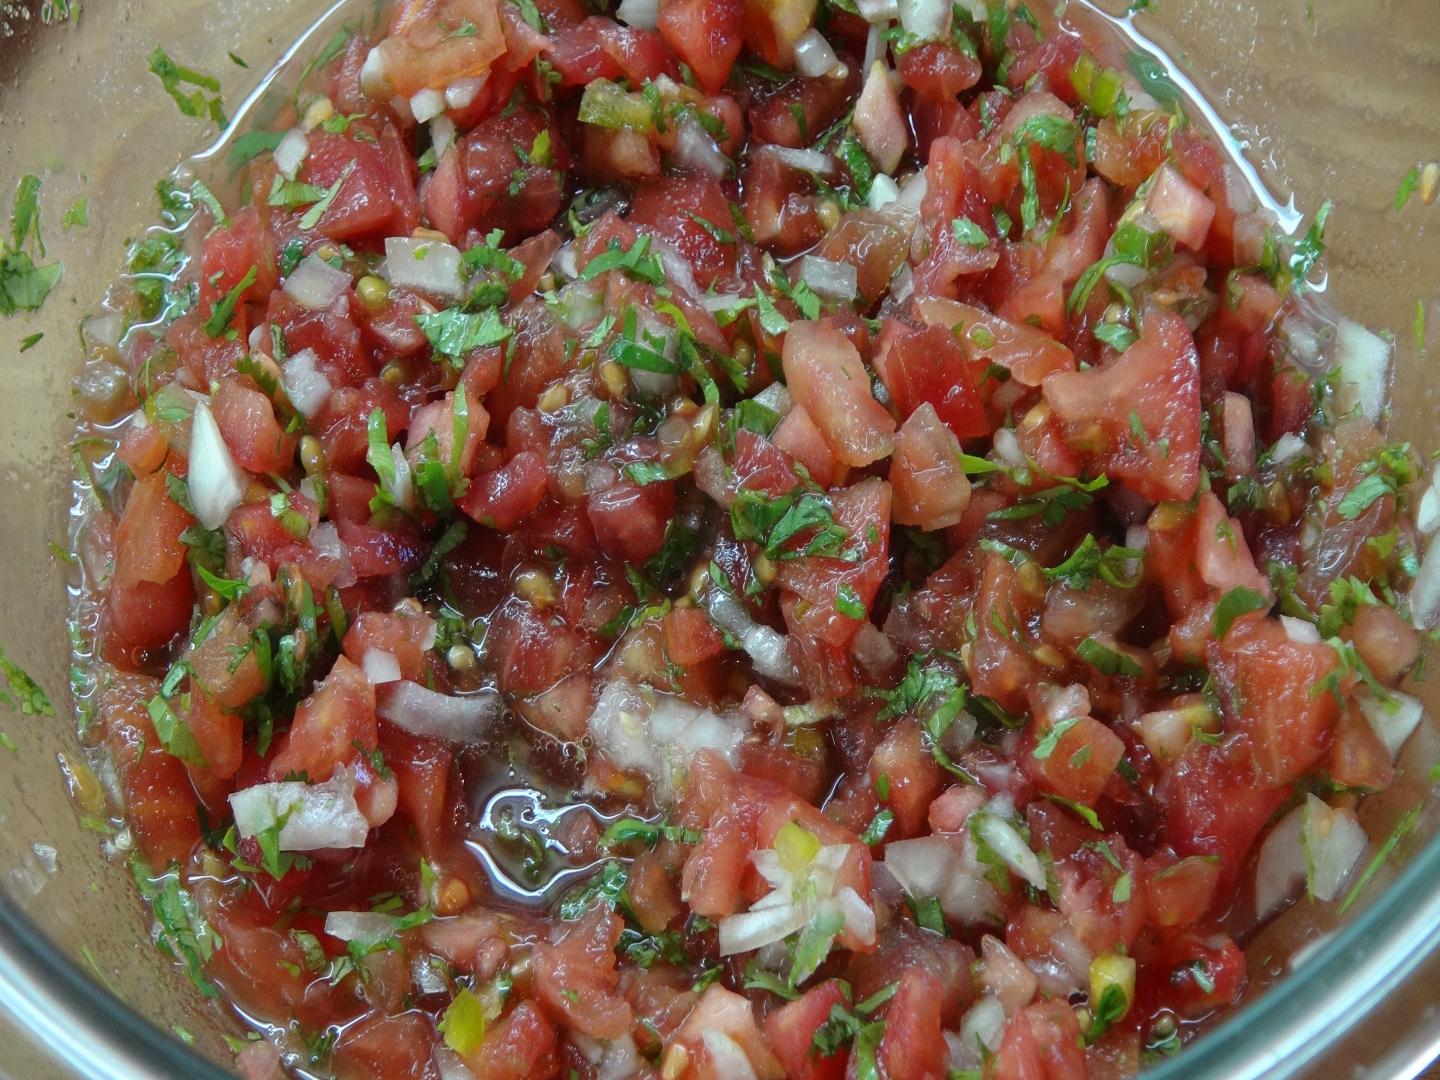 Fresh salsa recipe pico de gallo the frugal chef